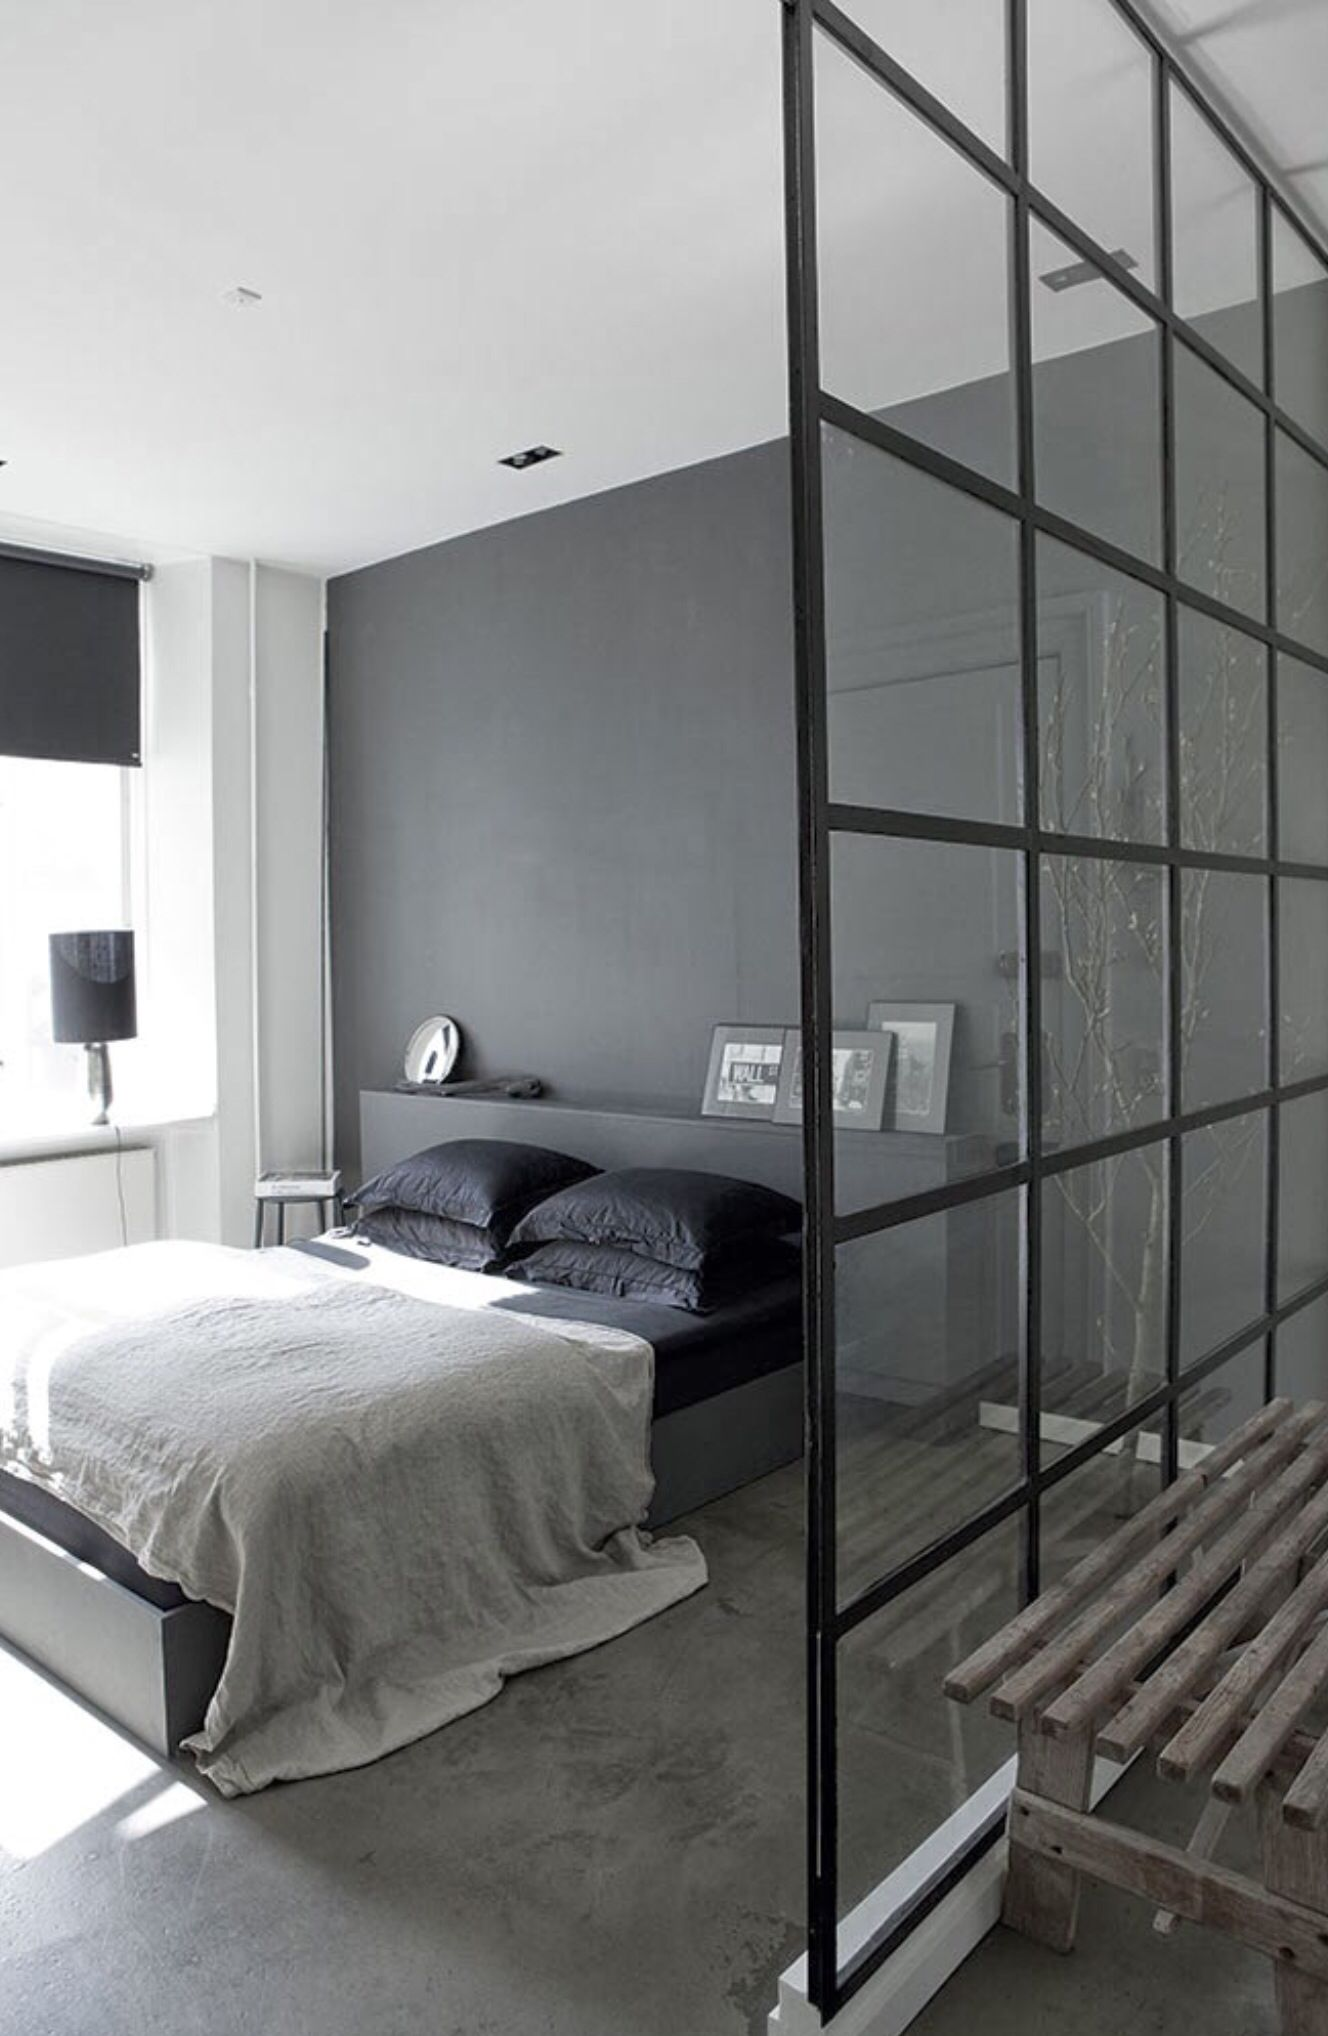 Pin by a on interior design pinterest divider bedrooms and